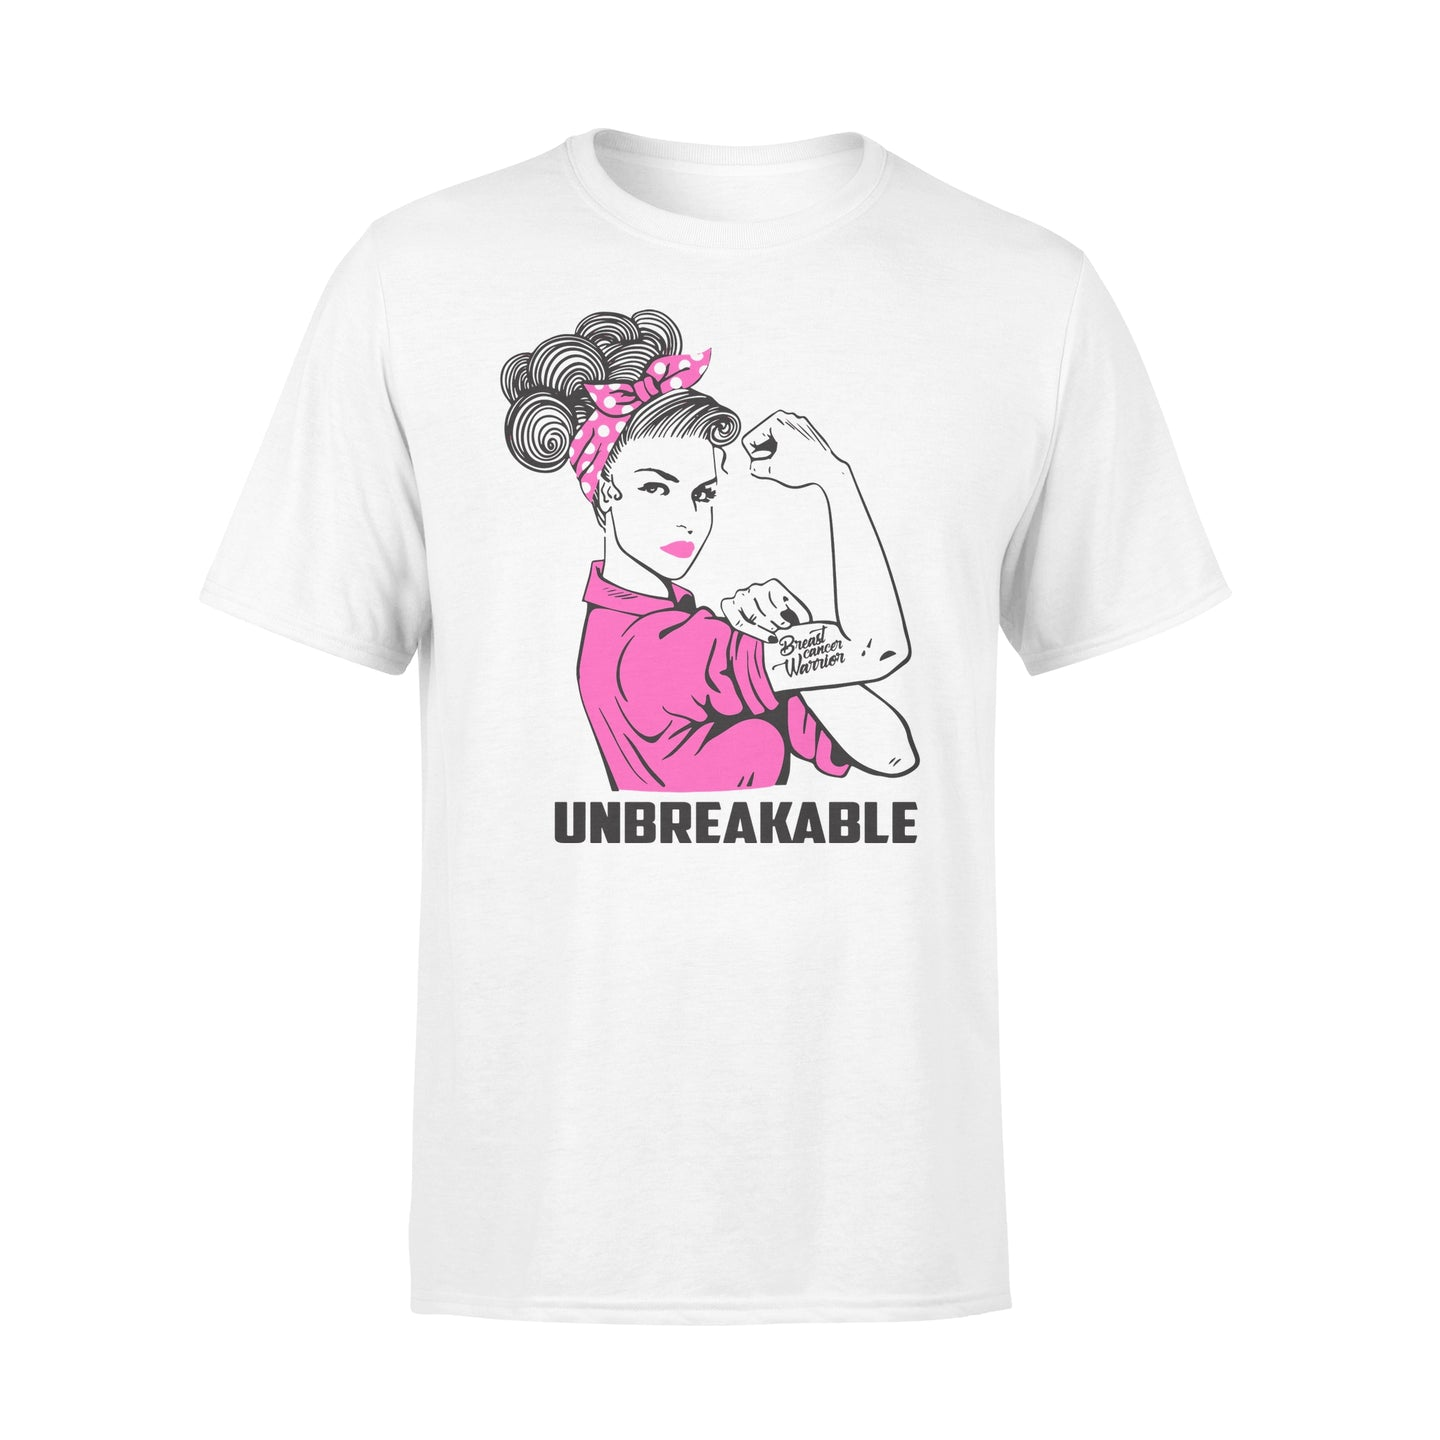 Breast Warrior Unbreakable - Breast Cancer Awareness - Standard T-shirt Apparel S / White